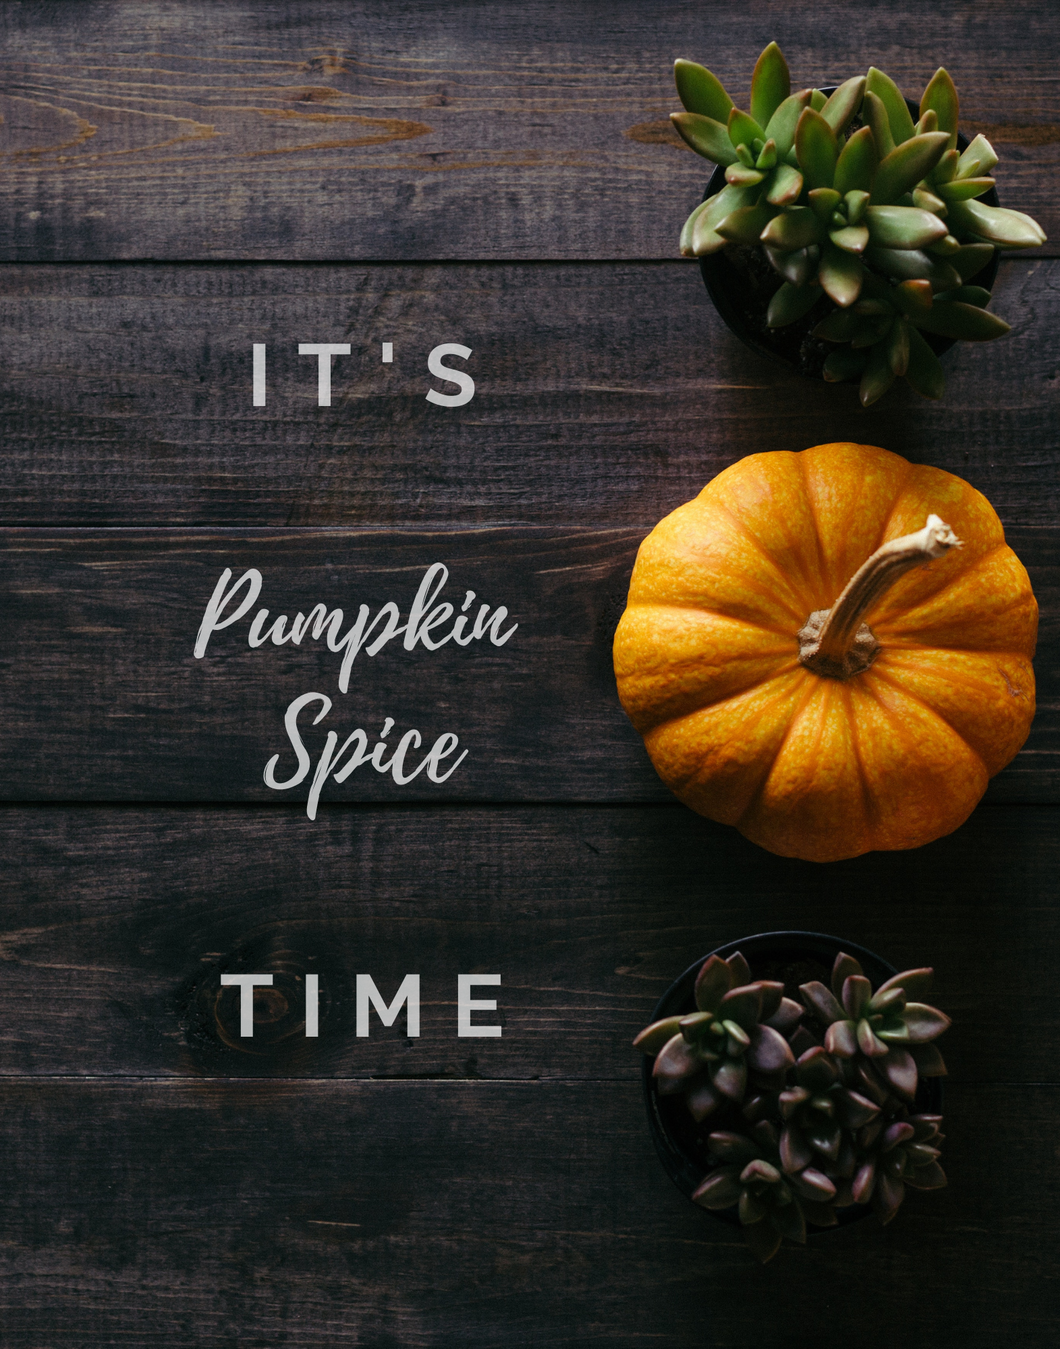 PUMPKIN SPICE TIME